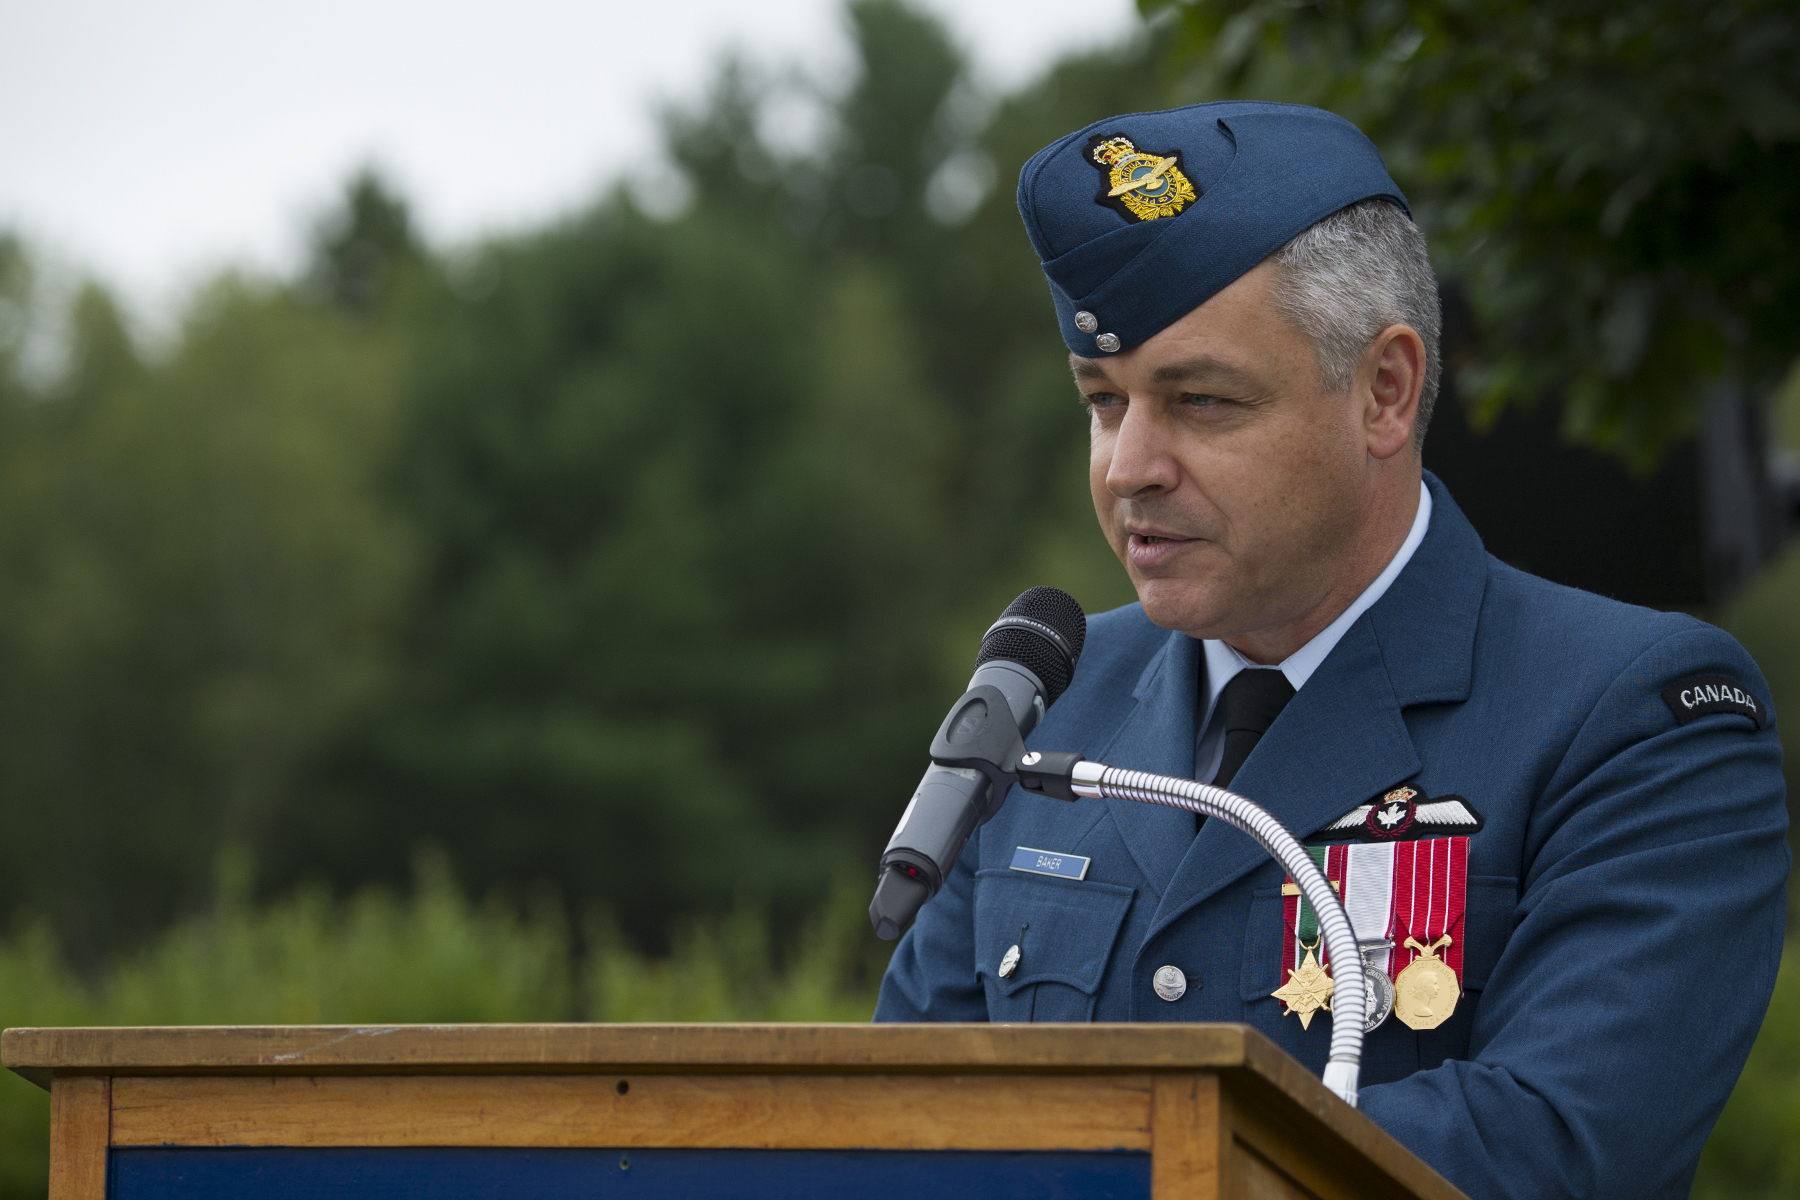 On September 17, 2017, Lieutenant-Colonel Bruno Baker, 14 Wing Greenwood acting wing commander, addresses attendees during the Battle of Britain parade at the 107 Royal Canadian Air Force Association at Greenwood, Nova Scotia. PHOTO: Master Corporal Rory Wilson, GD14-2017-0555-002